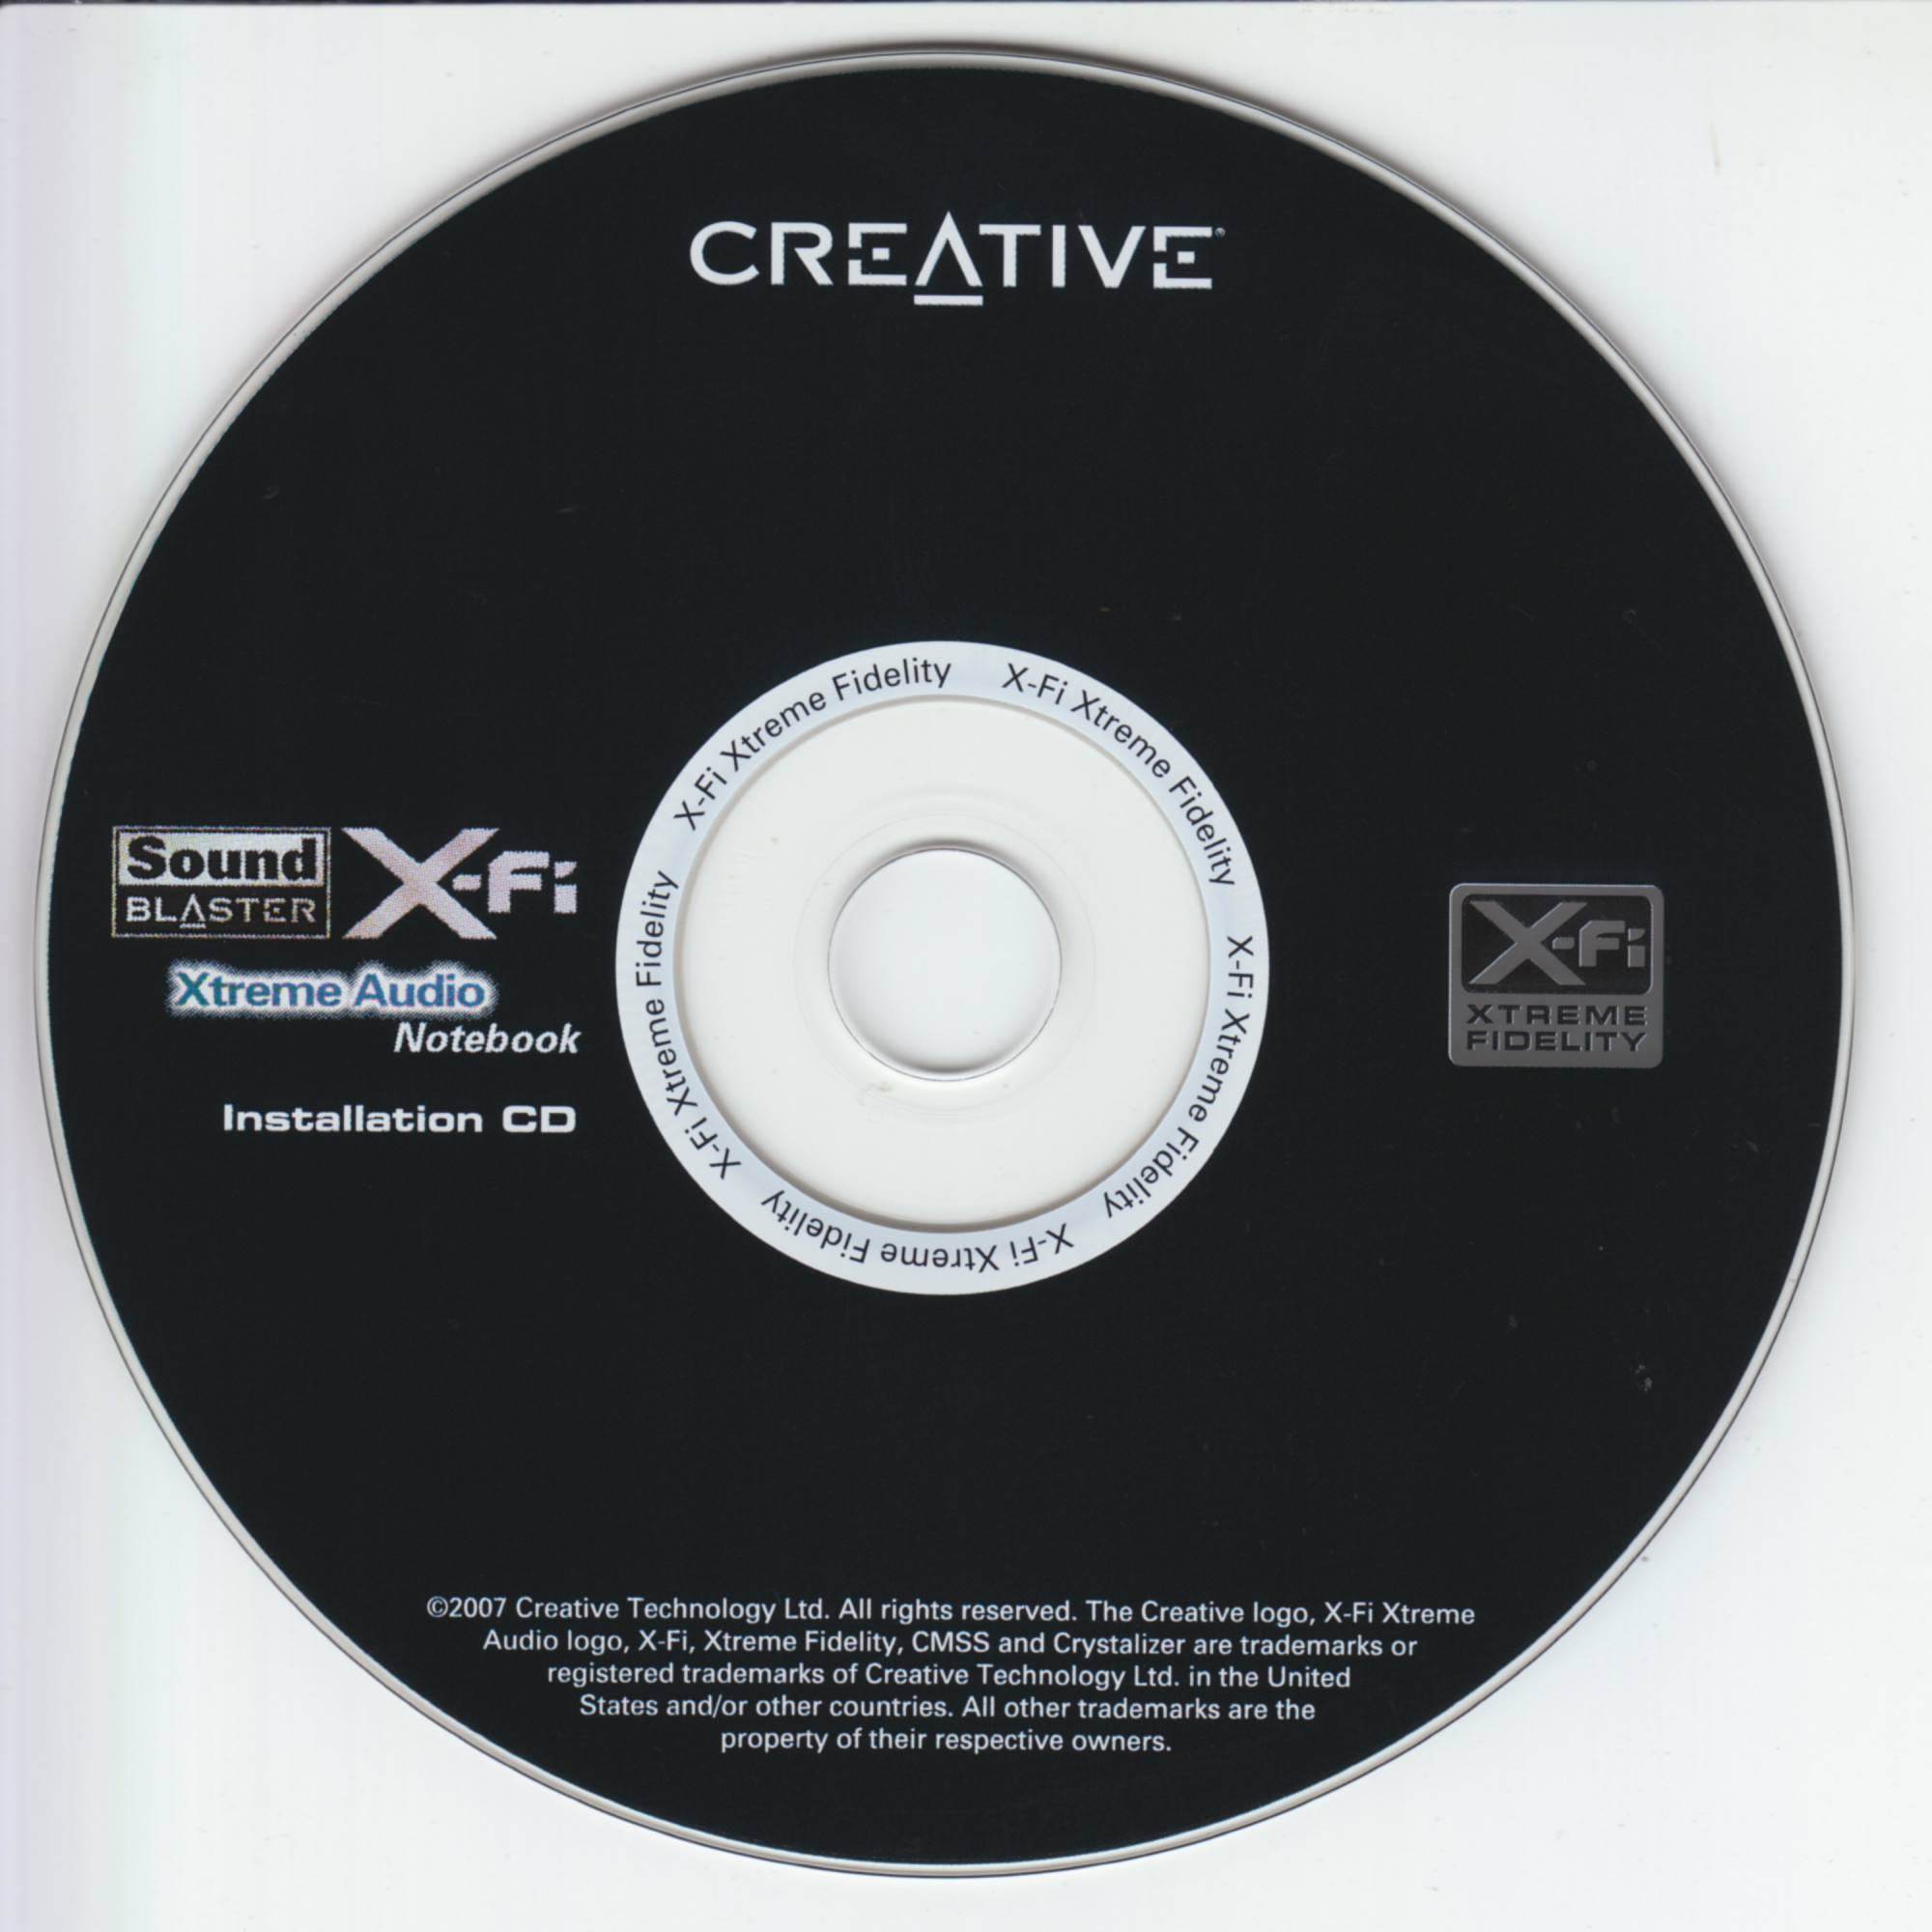 Creative Sound Blaster X-Fi Xtreme Audio Notebook Installation CD